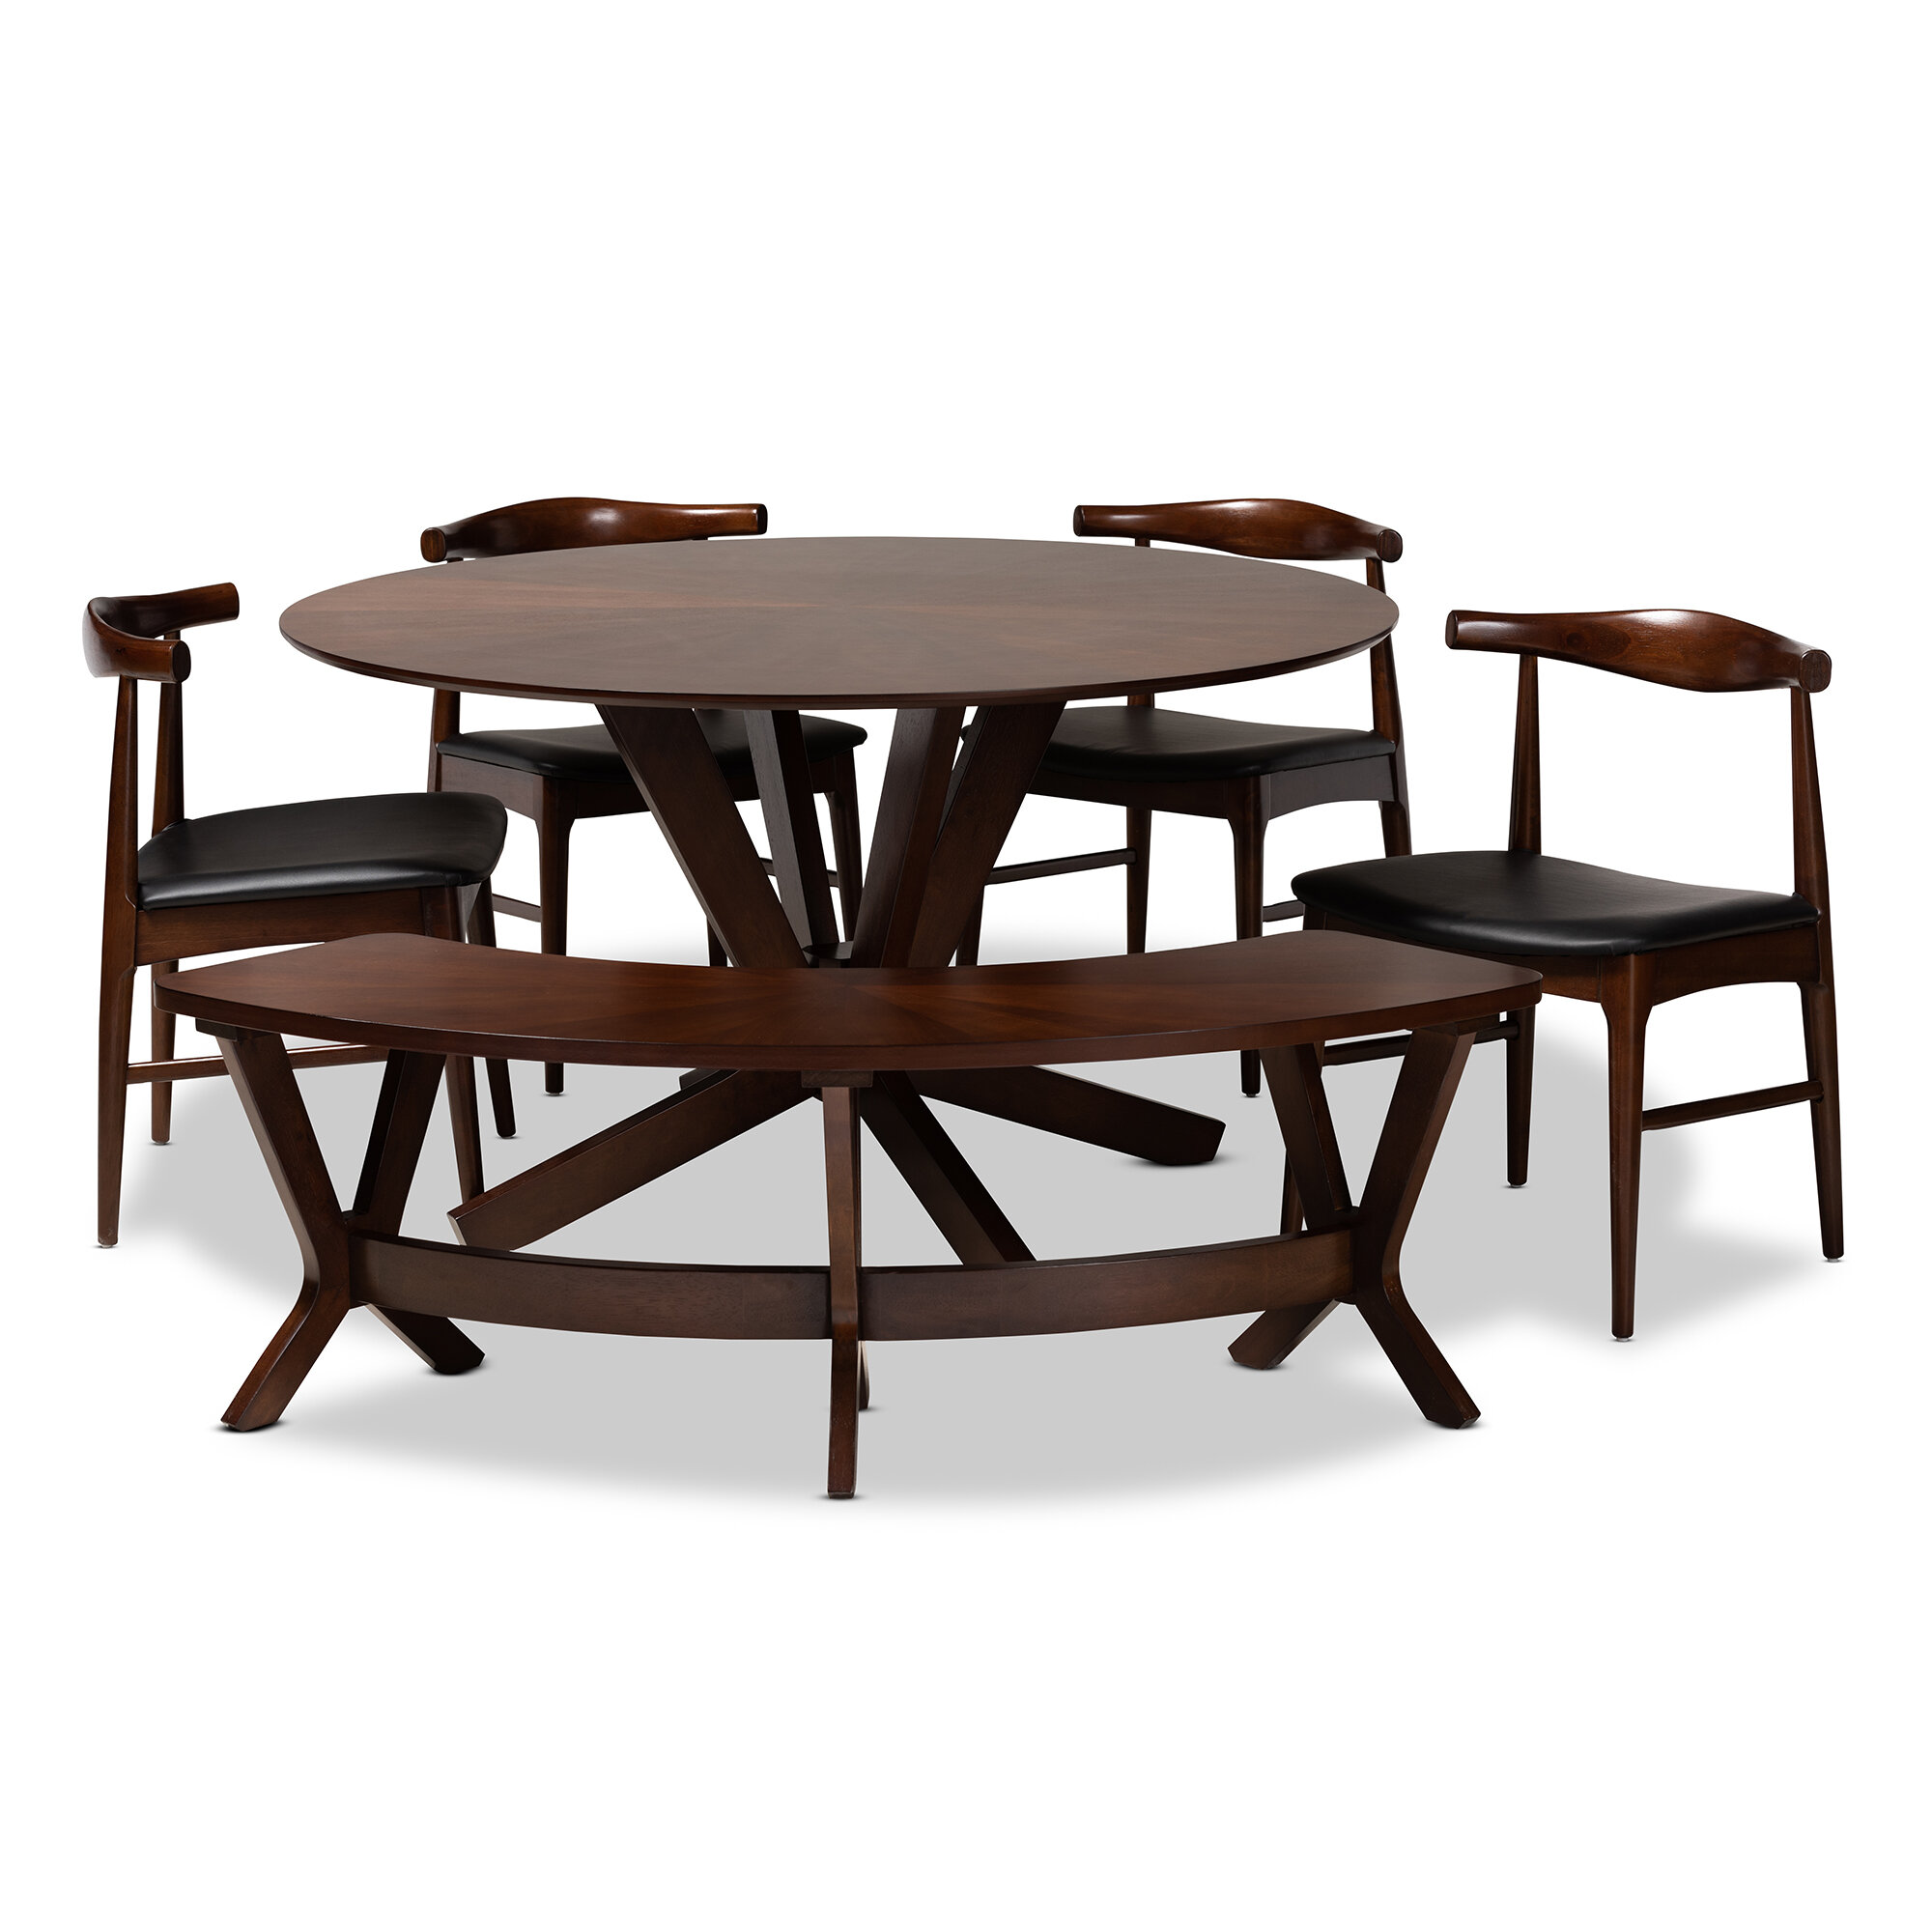 Ivy Bronx Southard Mid Century Modern Upholstered 6 Piece Dining Set Wayfair